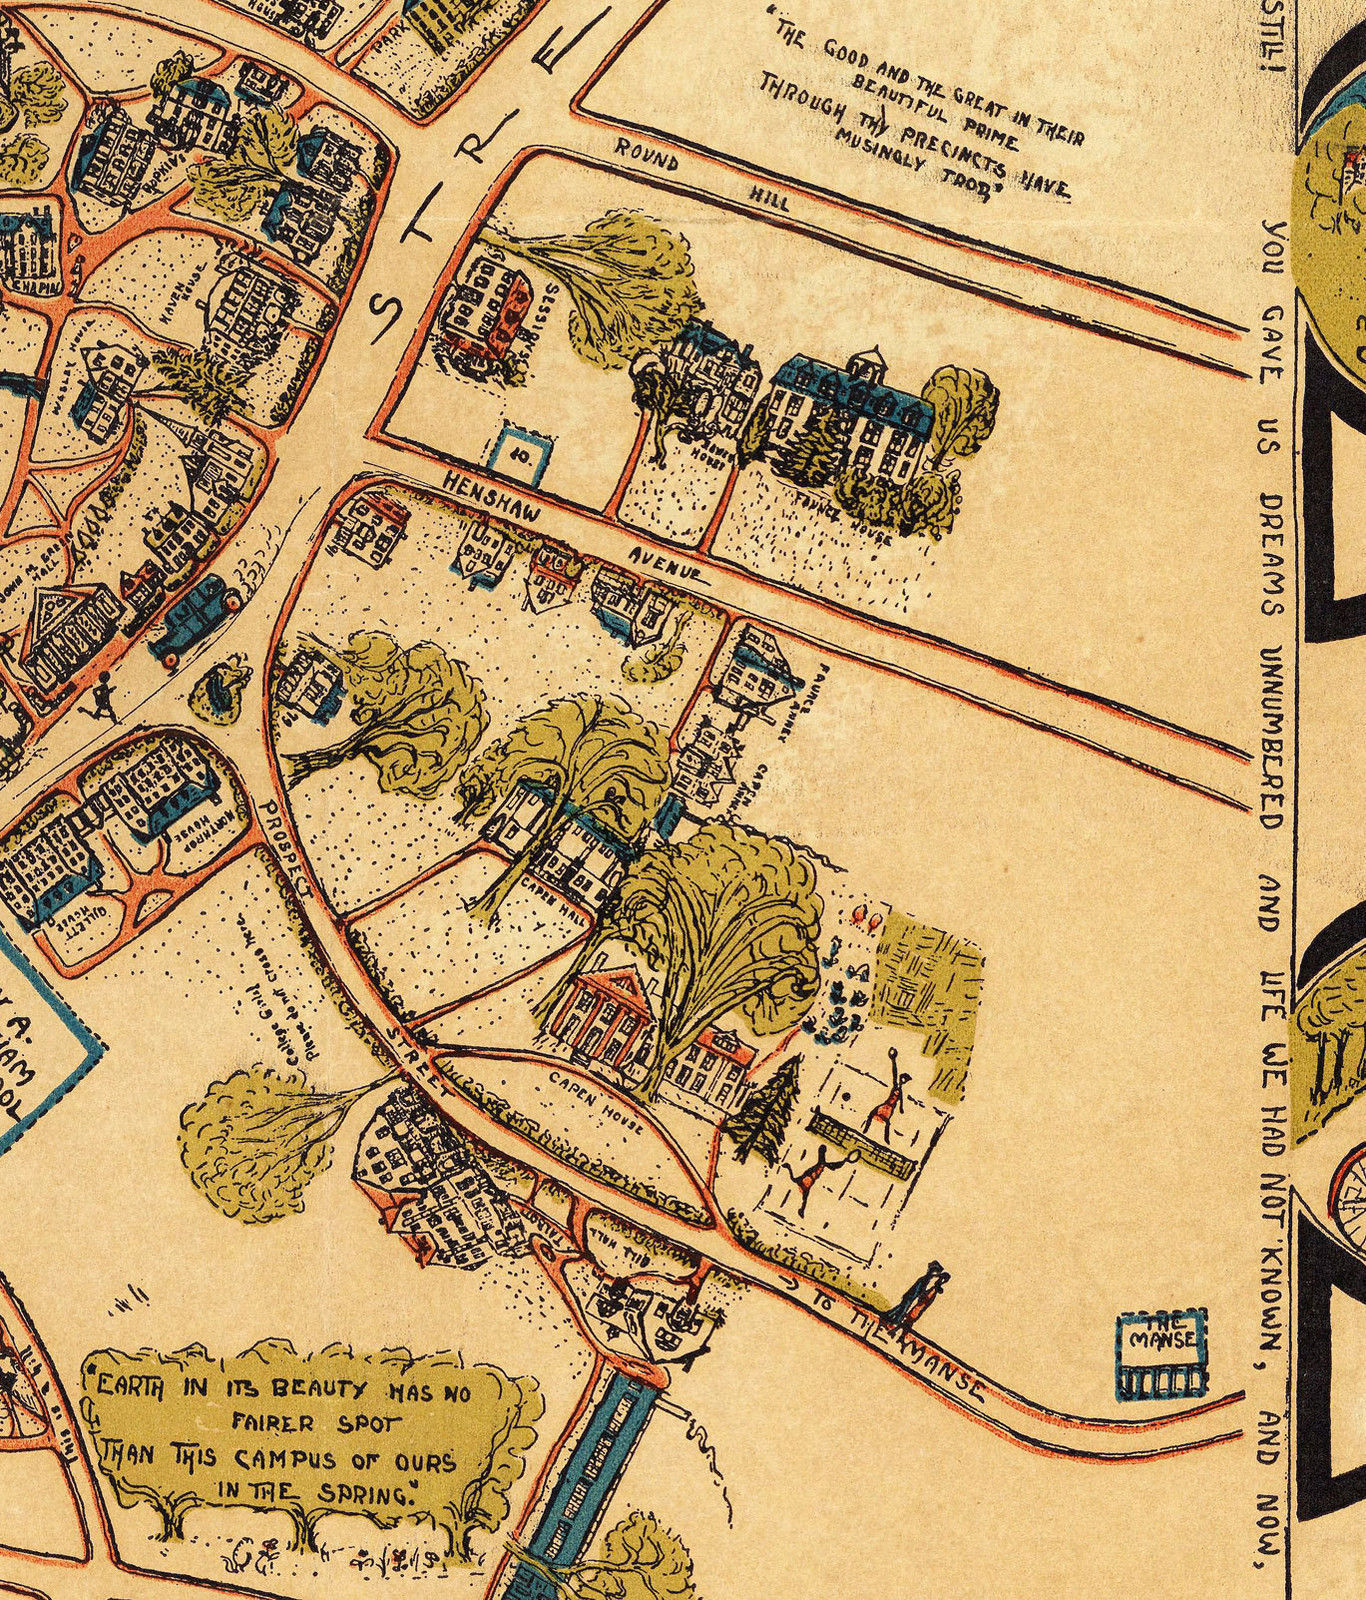 1932 Pictorial Map Princeton University Campus Buildings Streets Poster Print